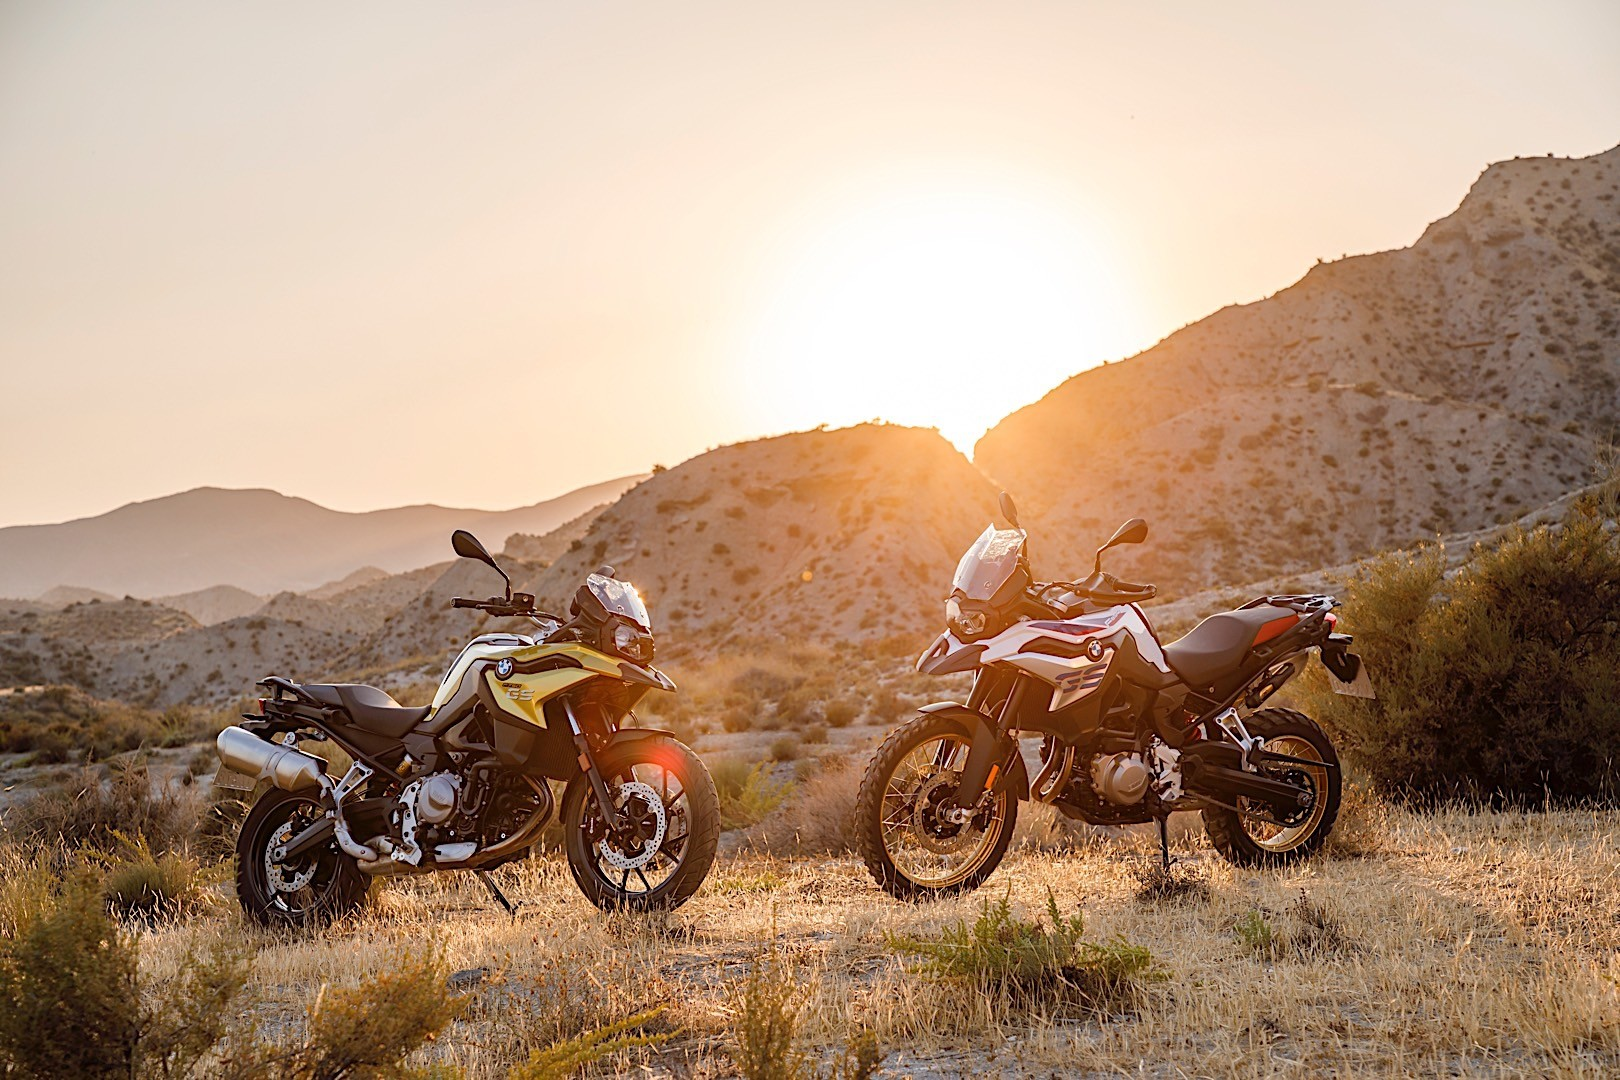 Bmw G310r Scrambler Shows Real Potential And Is A Feasible Project